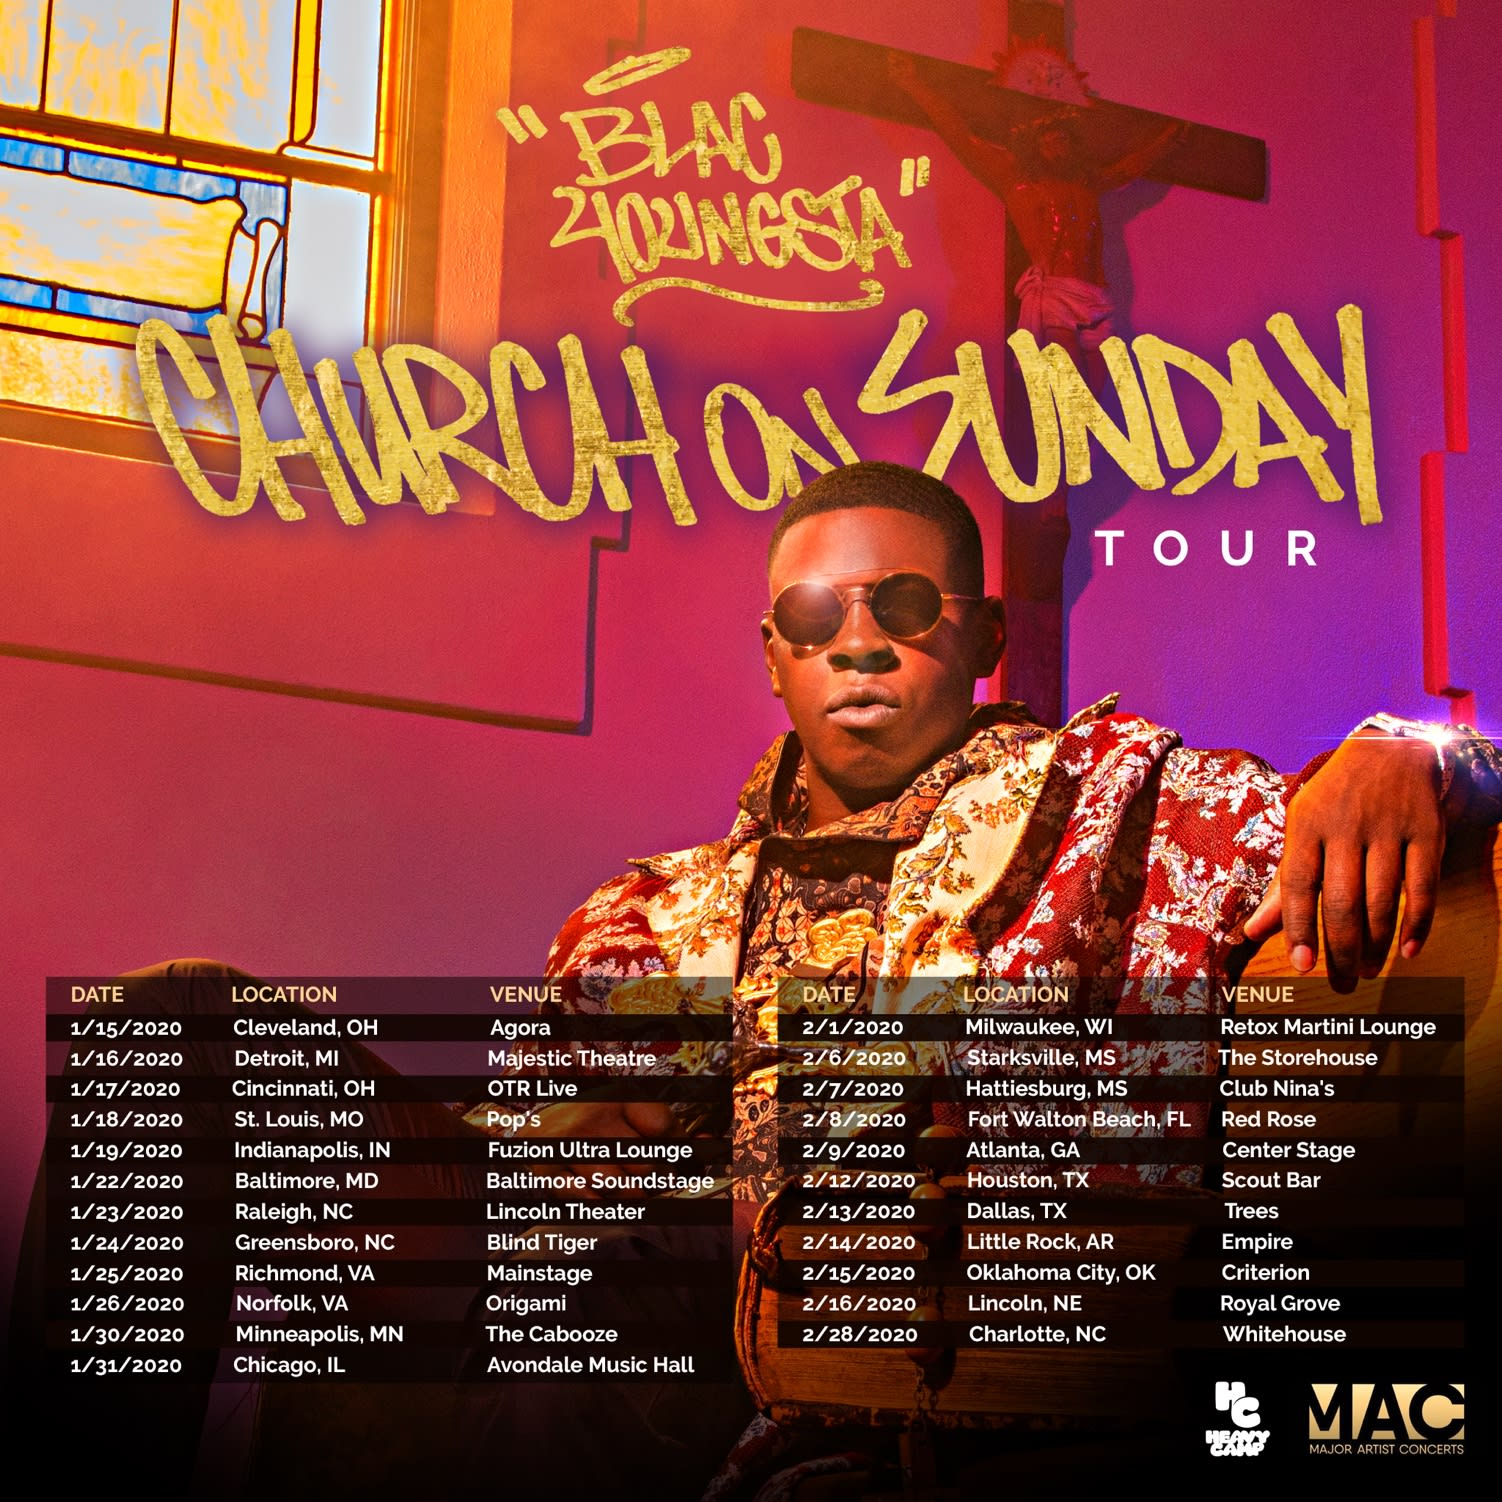 Blac Youngsta 'Church on Sunday'